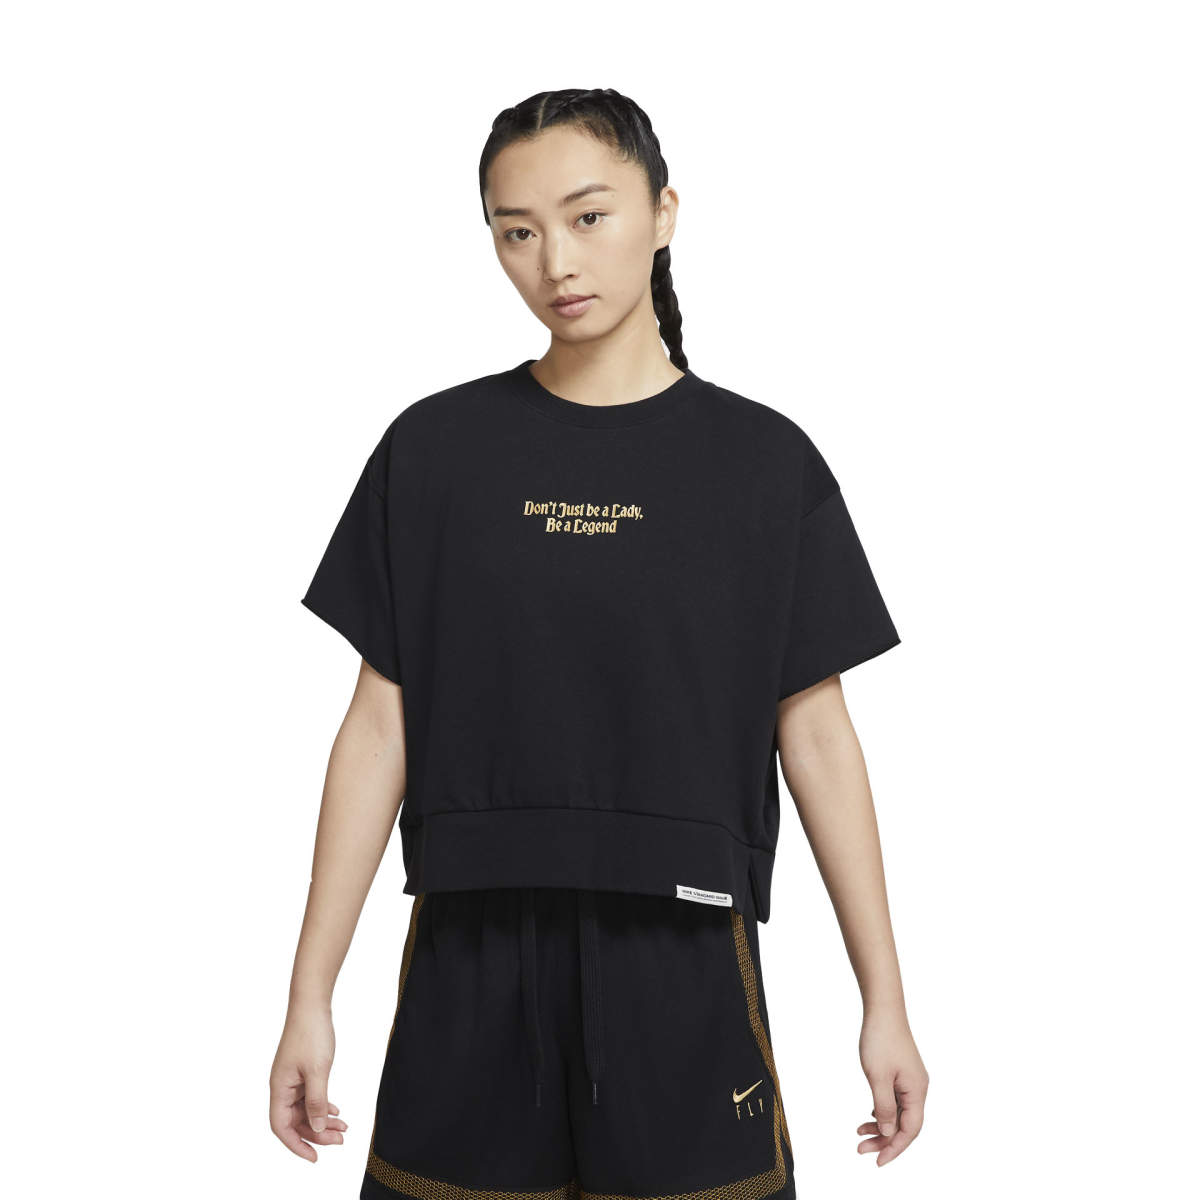 Wmns standard issue top black